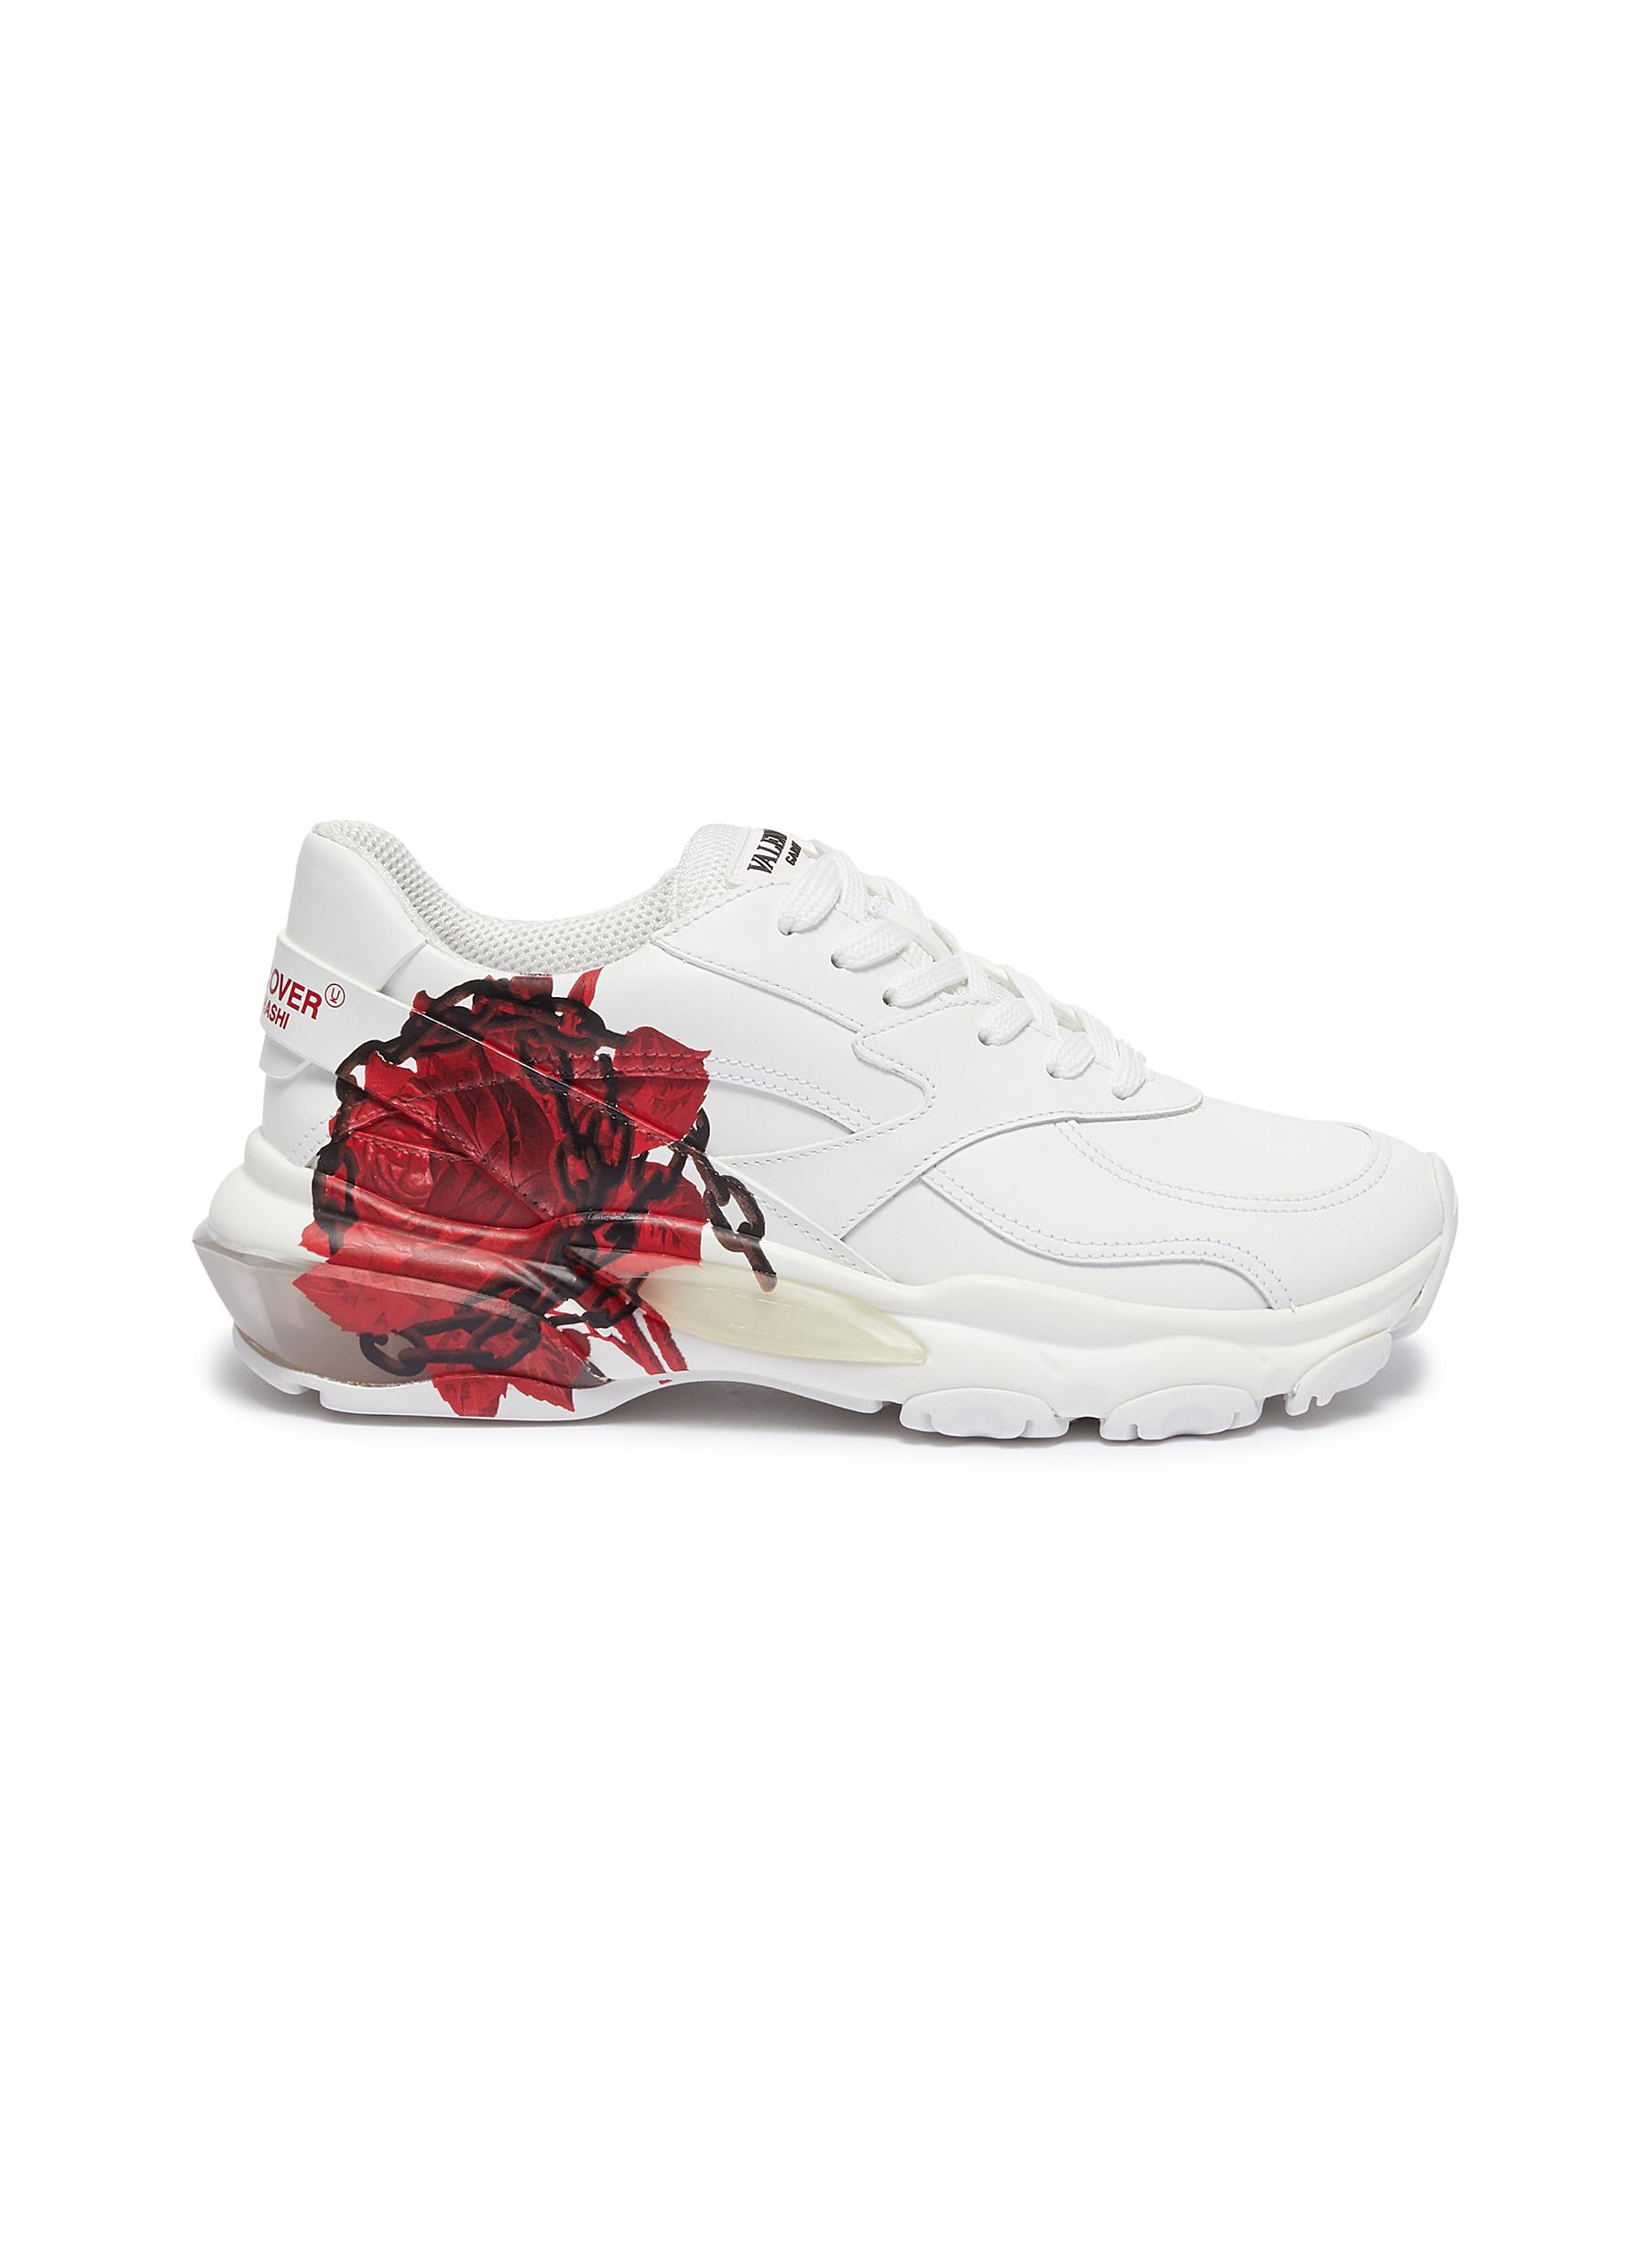 x UNDERCOVER Bounce rose print leather sneakers by Valentino